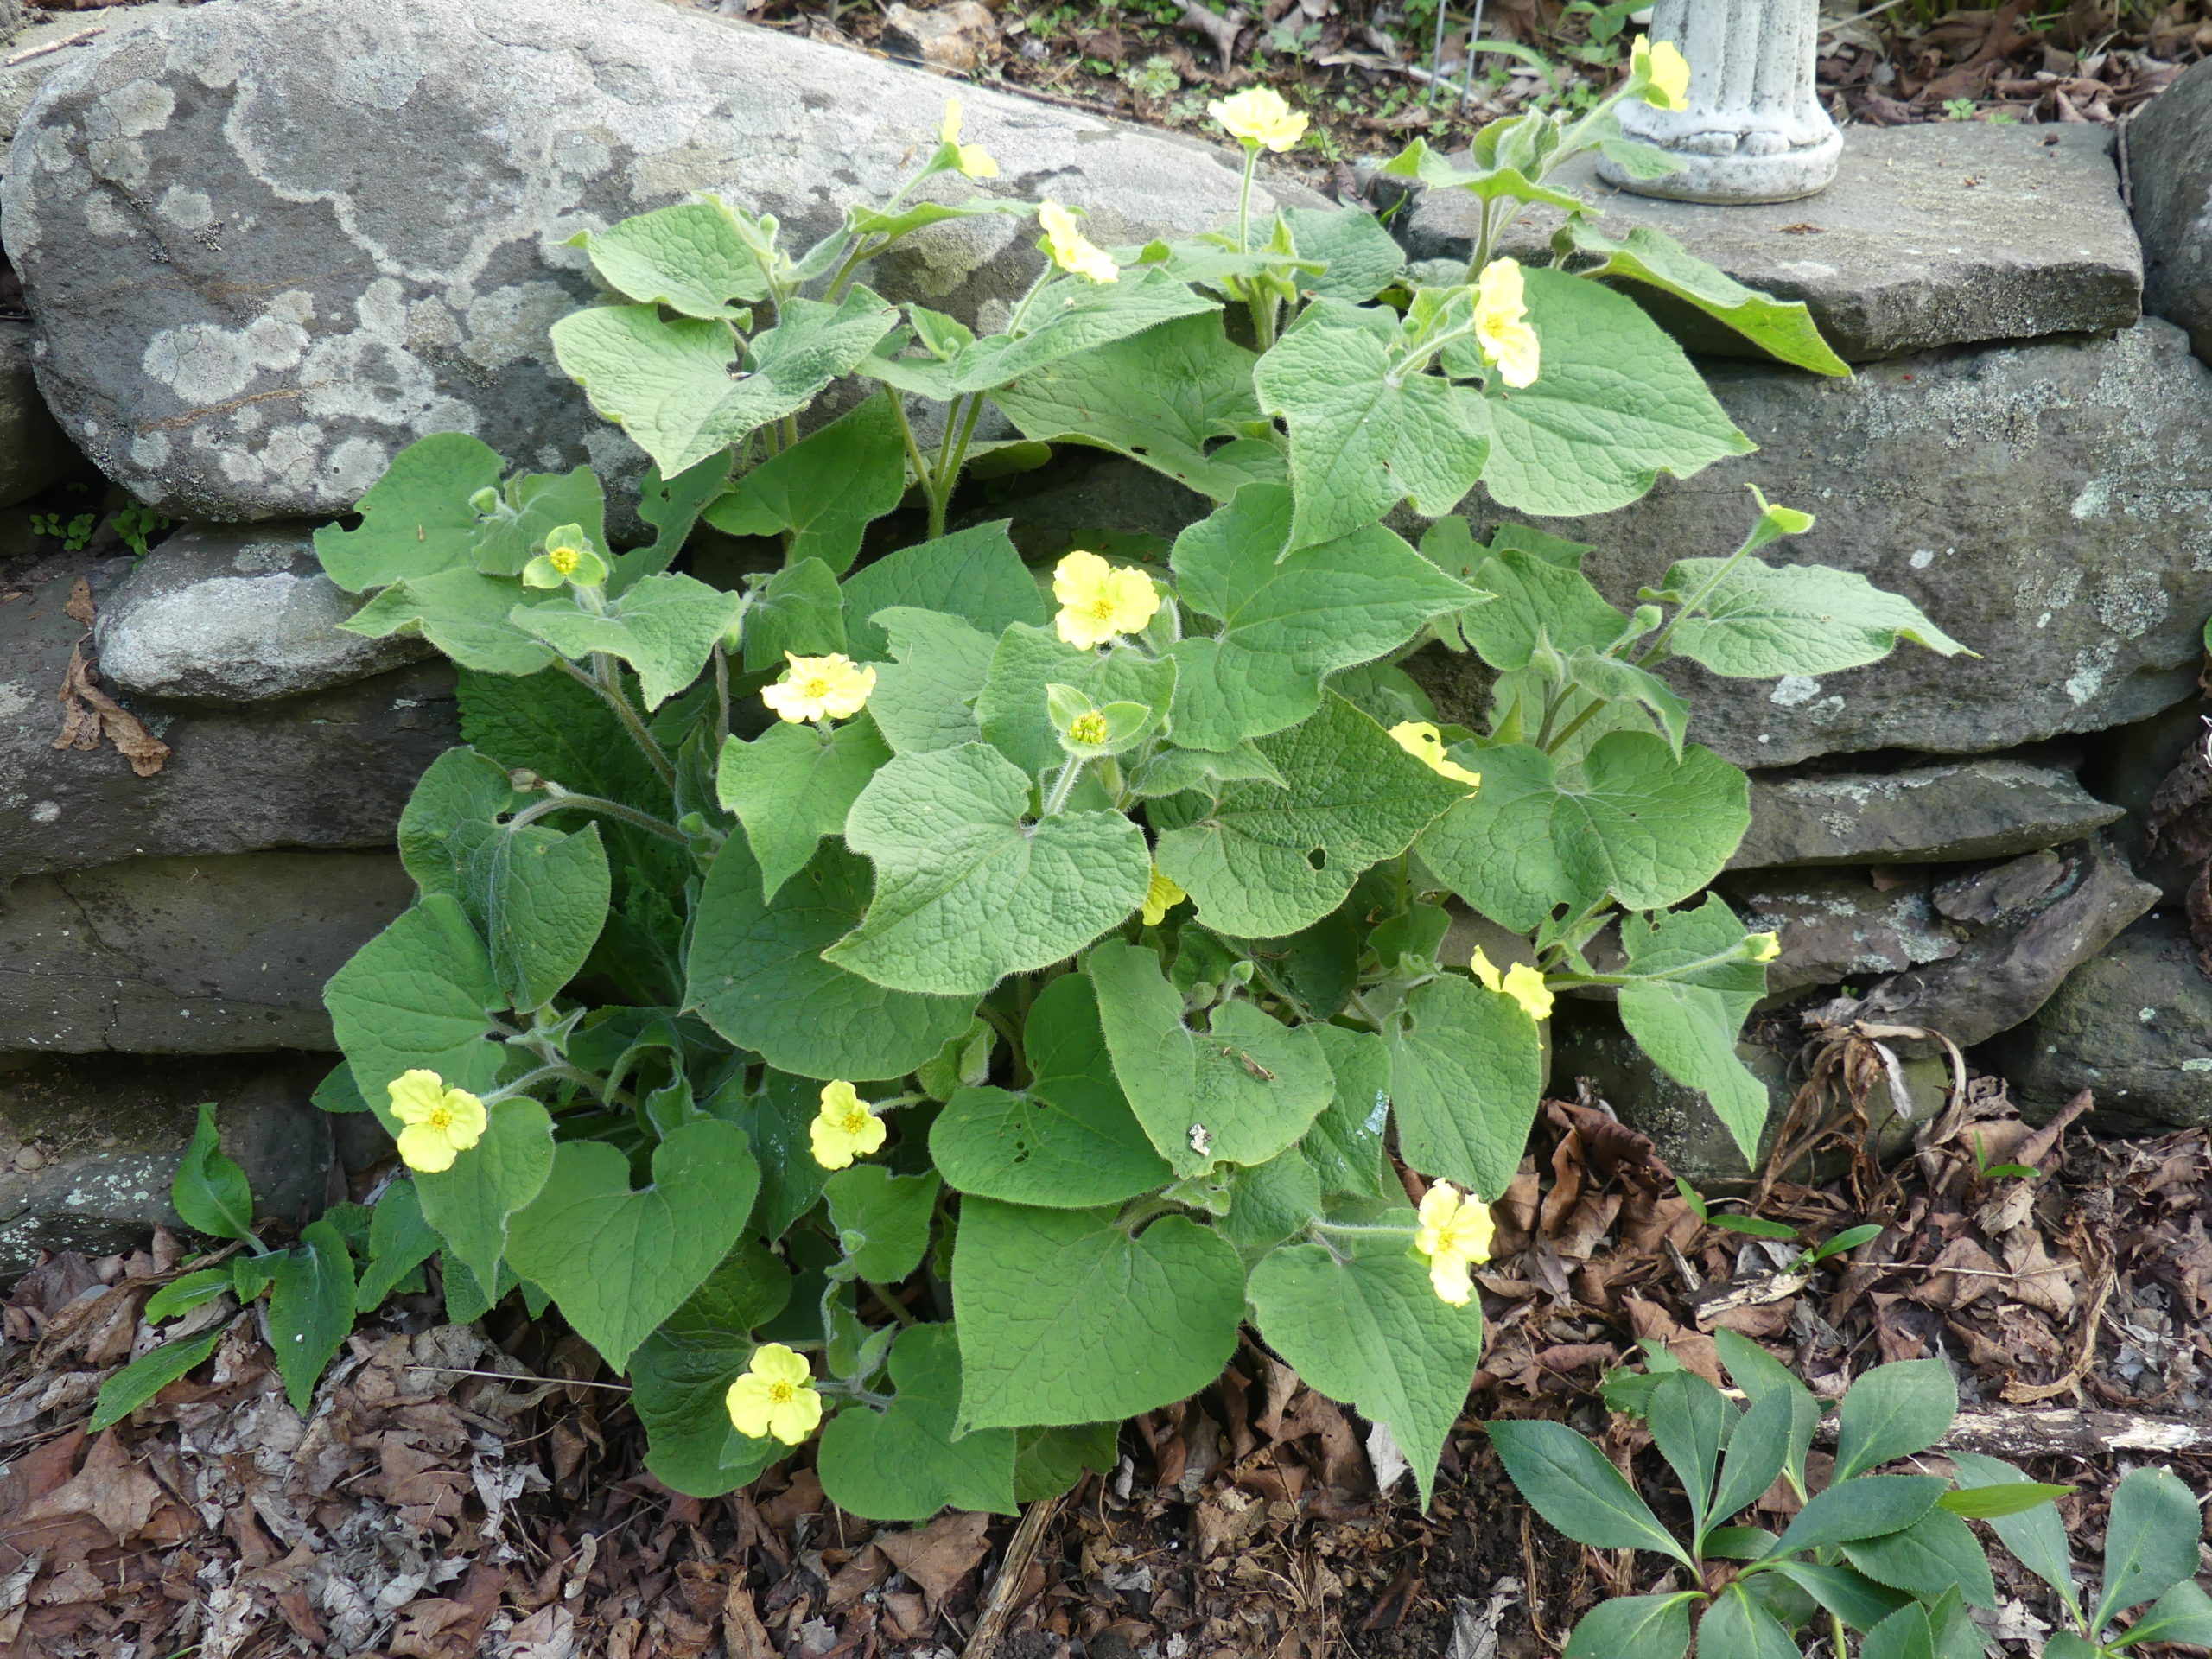 Saruma henryi, or the upright wild ginger, is a delightful plant for the shaded garden. The plant grows to about 15 inches and is covered with half-inch yellow flowers. Removing spent flowers will result in 3 weeks of blooms.